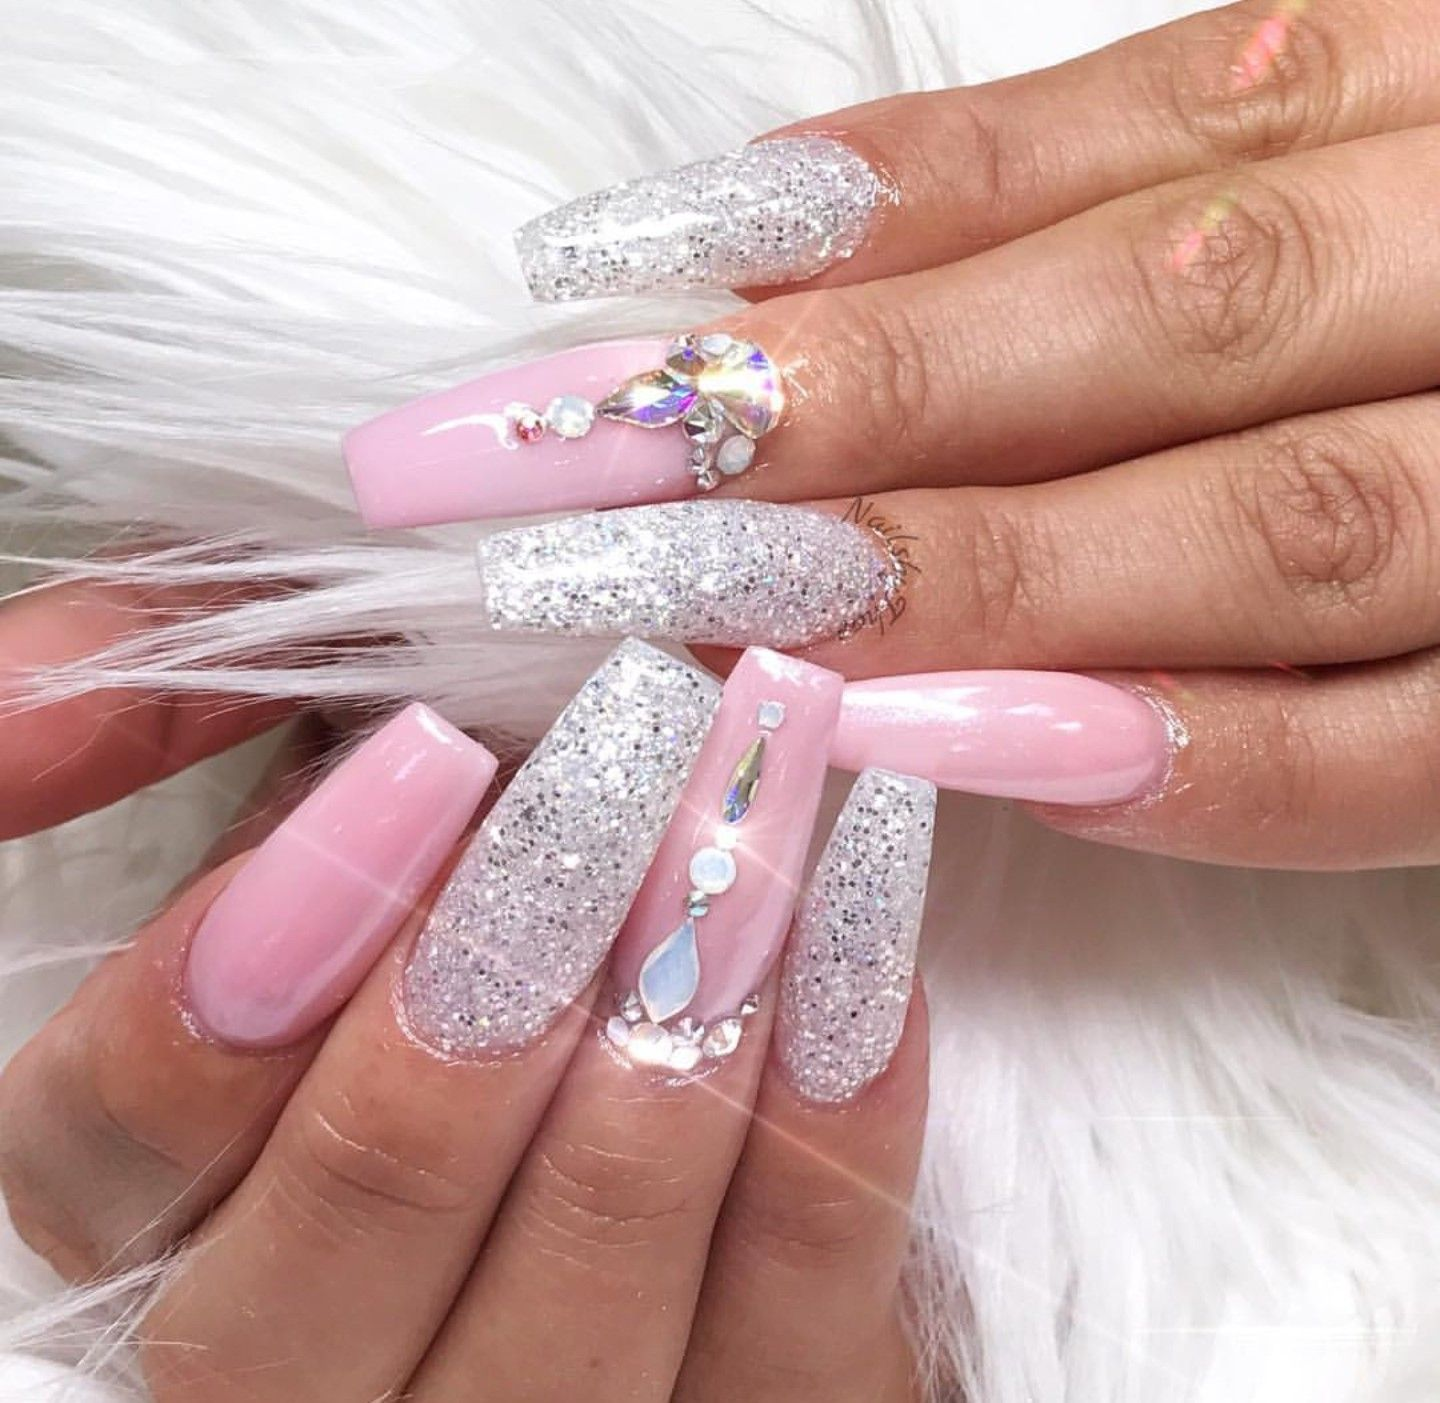 Pinterest : shanonduvers | Nails | Pinterest | Nageldesign ...